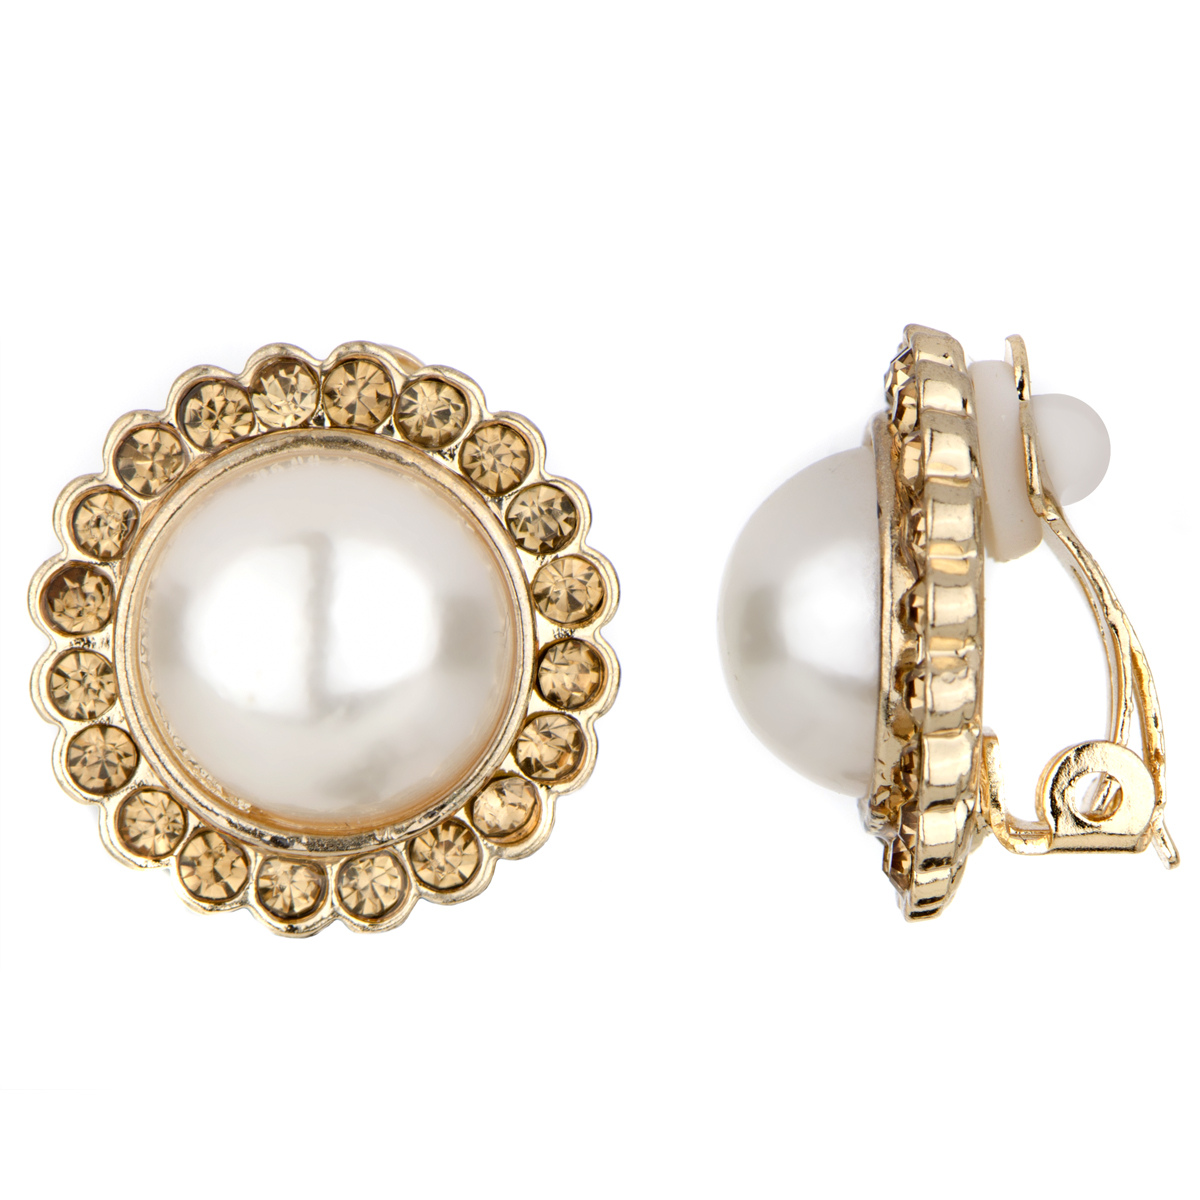 clip earrings pearl clip on earrings jlshtwz